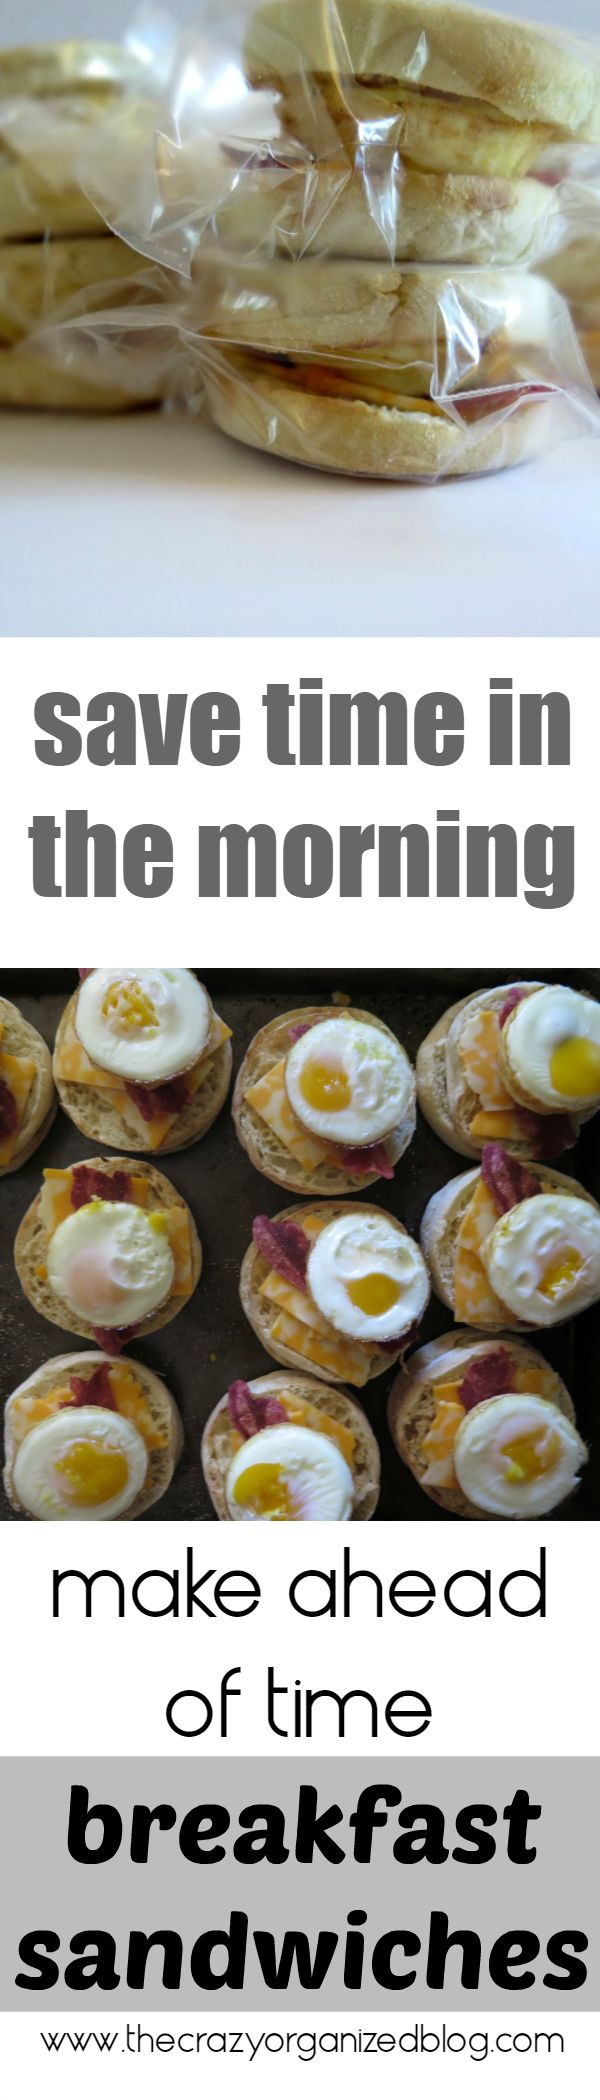 Save so much time in the morning with these easy to make ahead of time breakfast sandwiches!